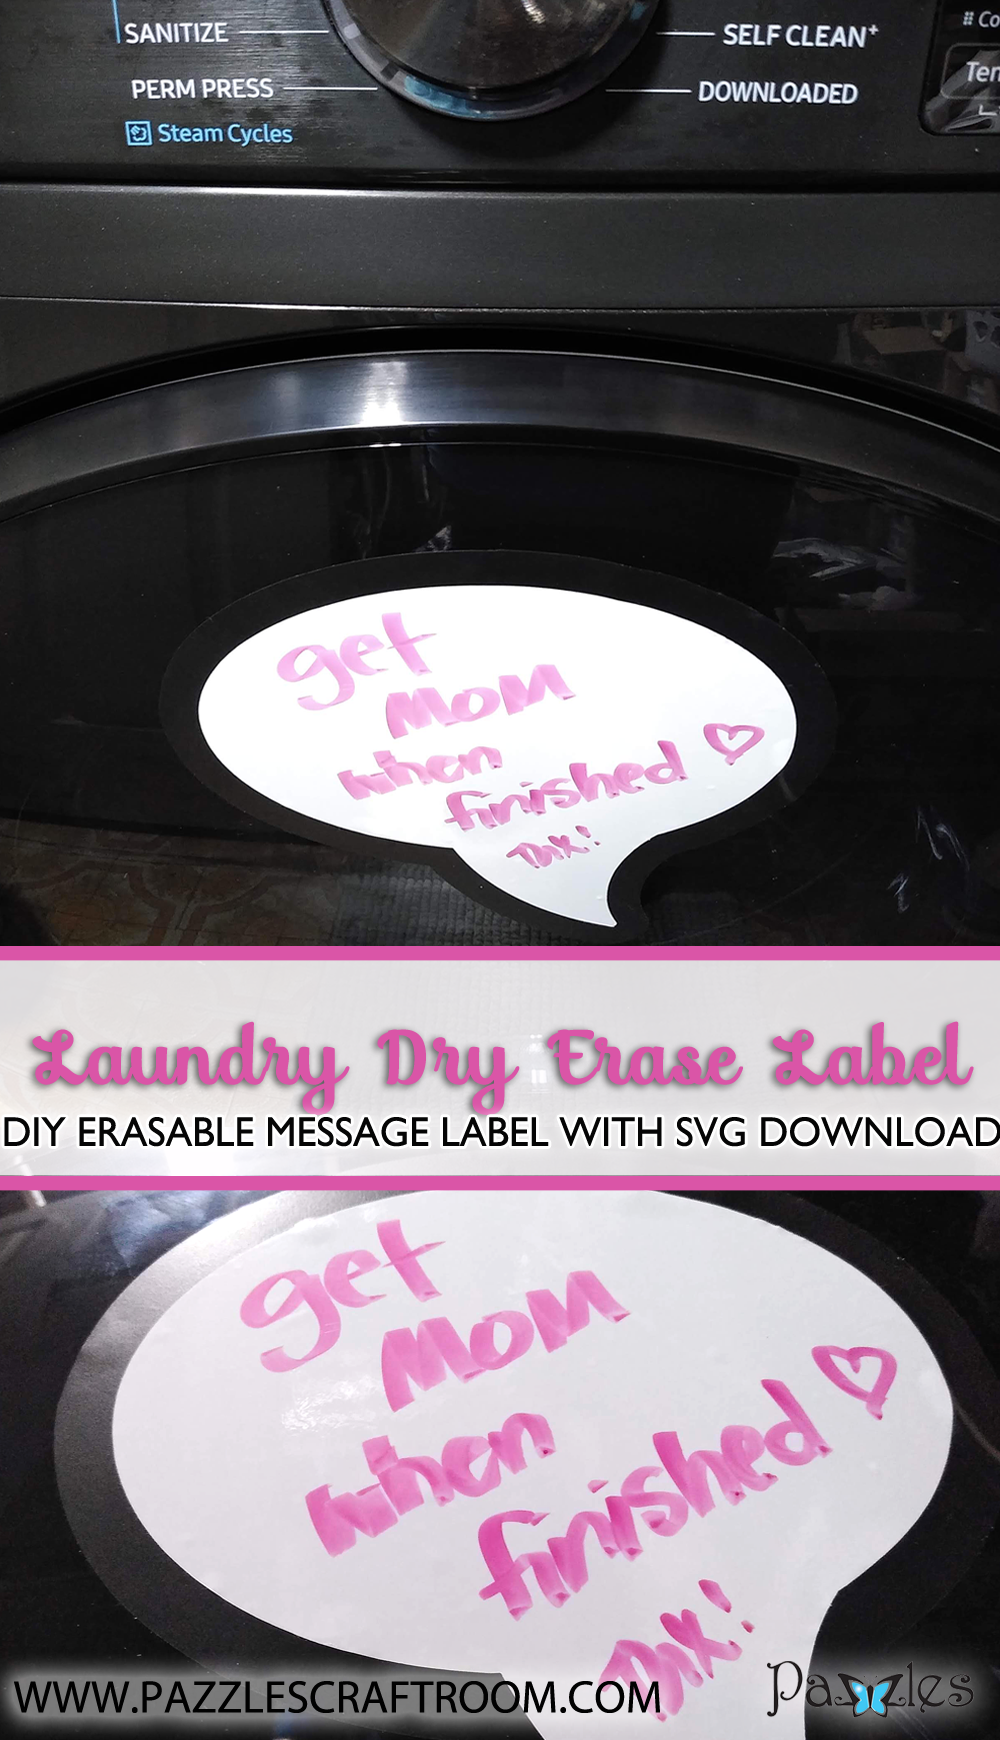 Pazzles DIY Laundry Dry Erase Labels with instant SVG download. Compatible with all major electronic cutters including Pazzles Inspiration, Cricut, and Silhouette Cameo. Design by Renee Smart.